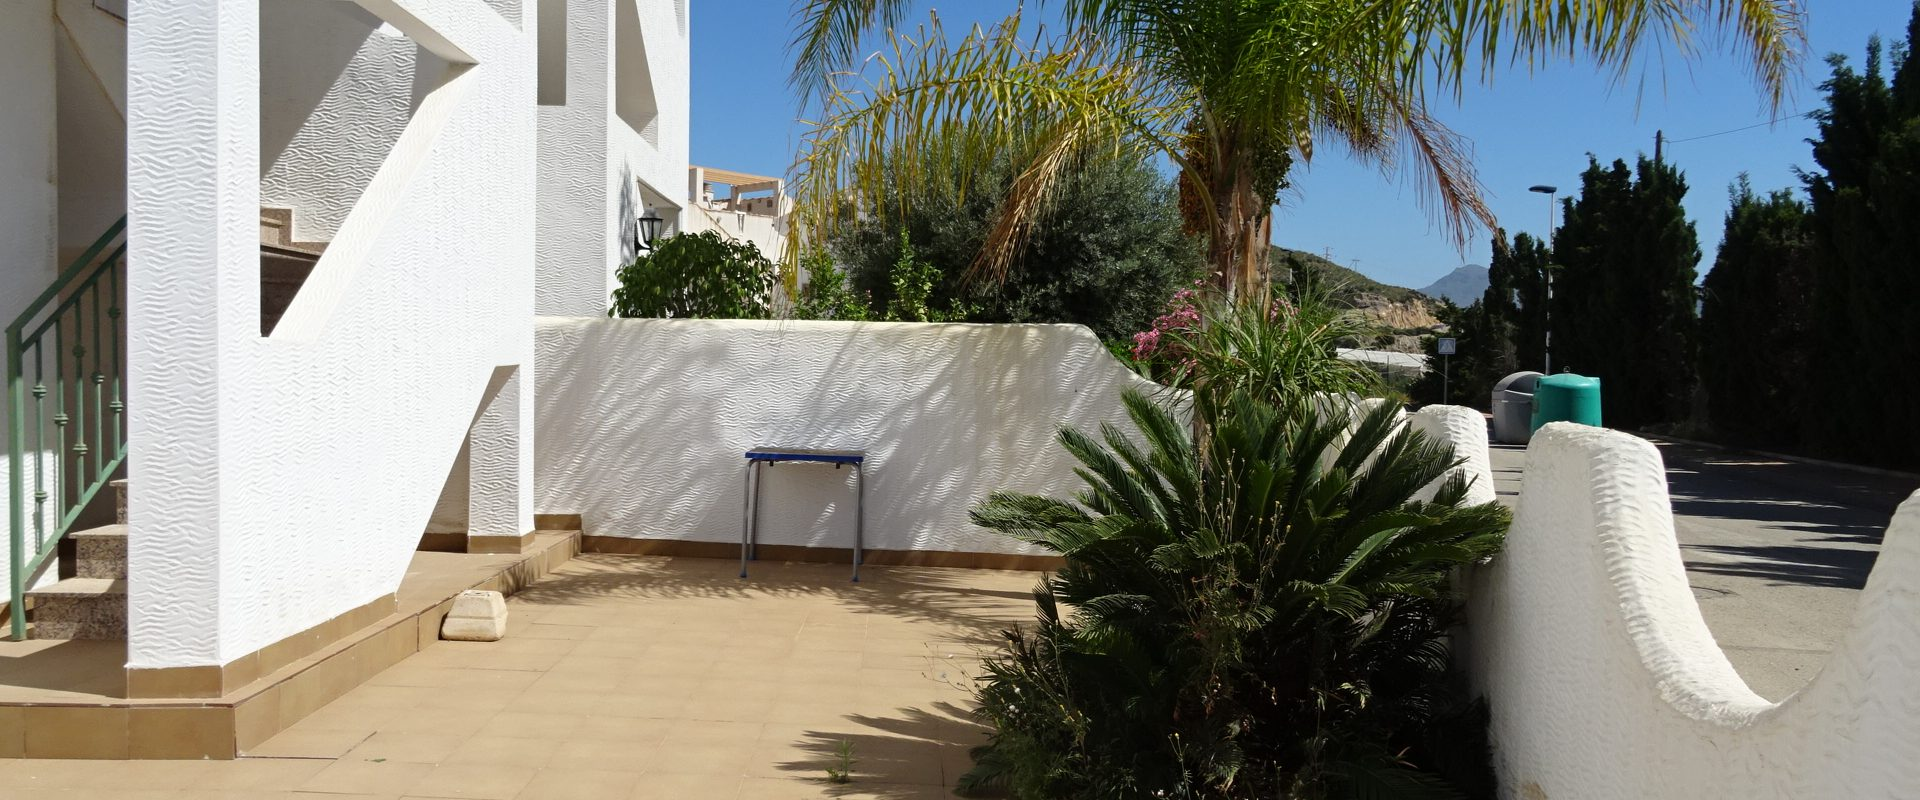 Penthouse for rent in Bolnuevo